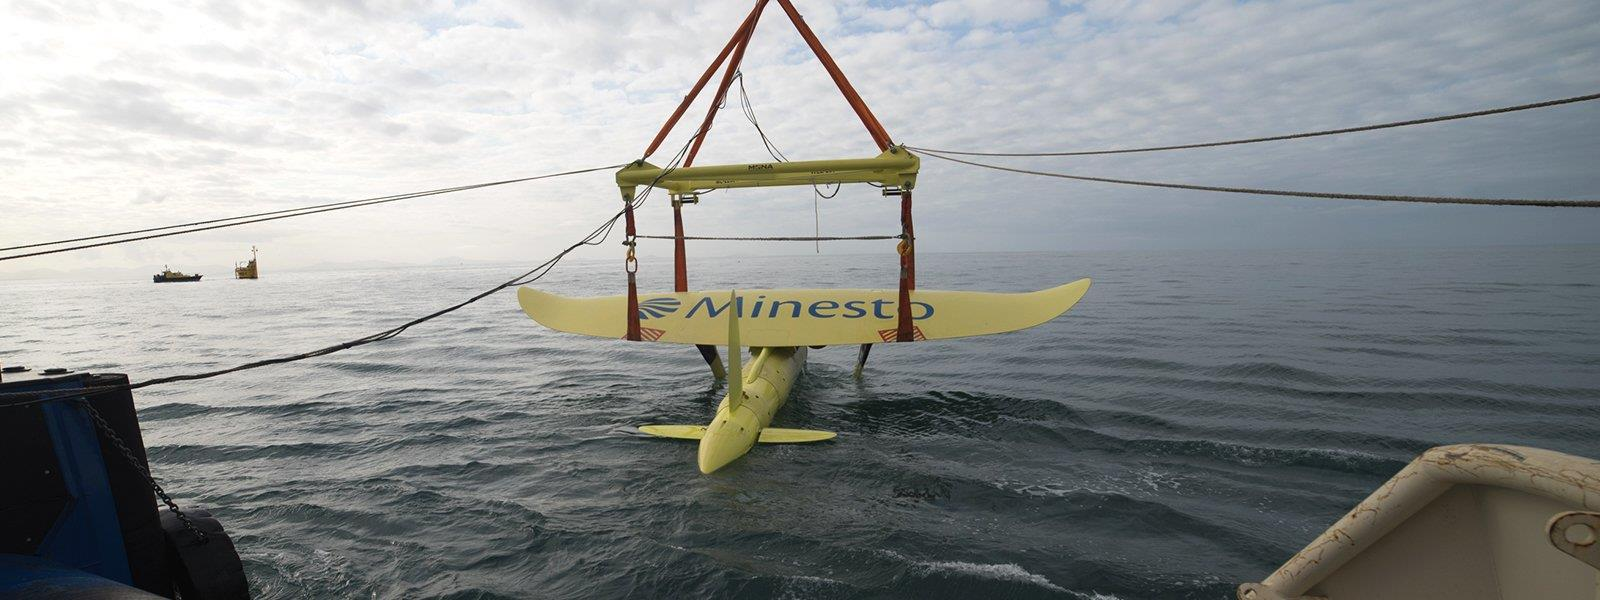 A Minesto DG500 energy kite